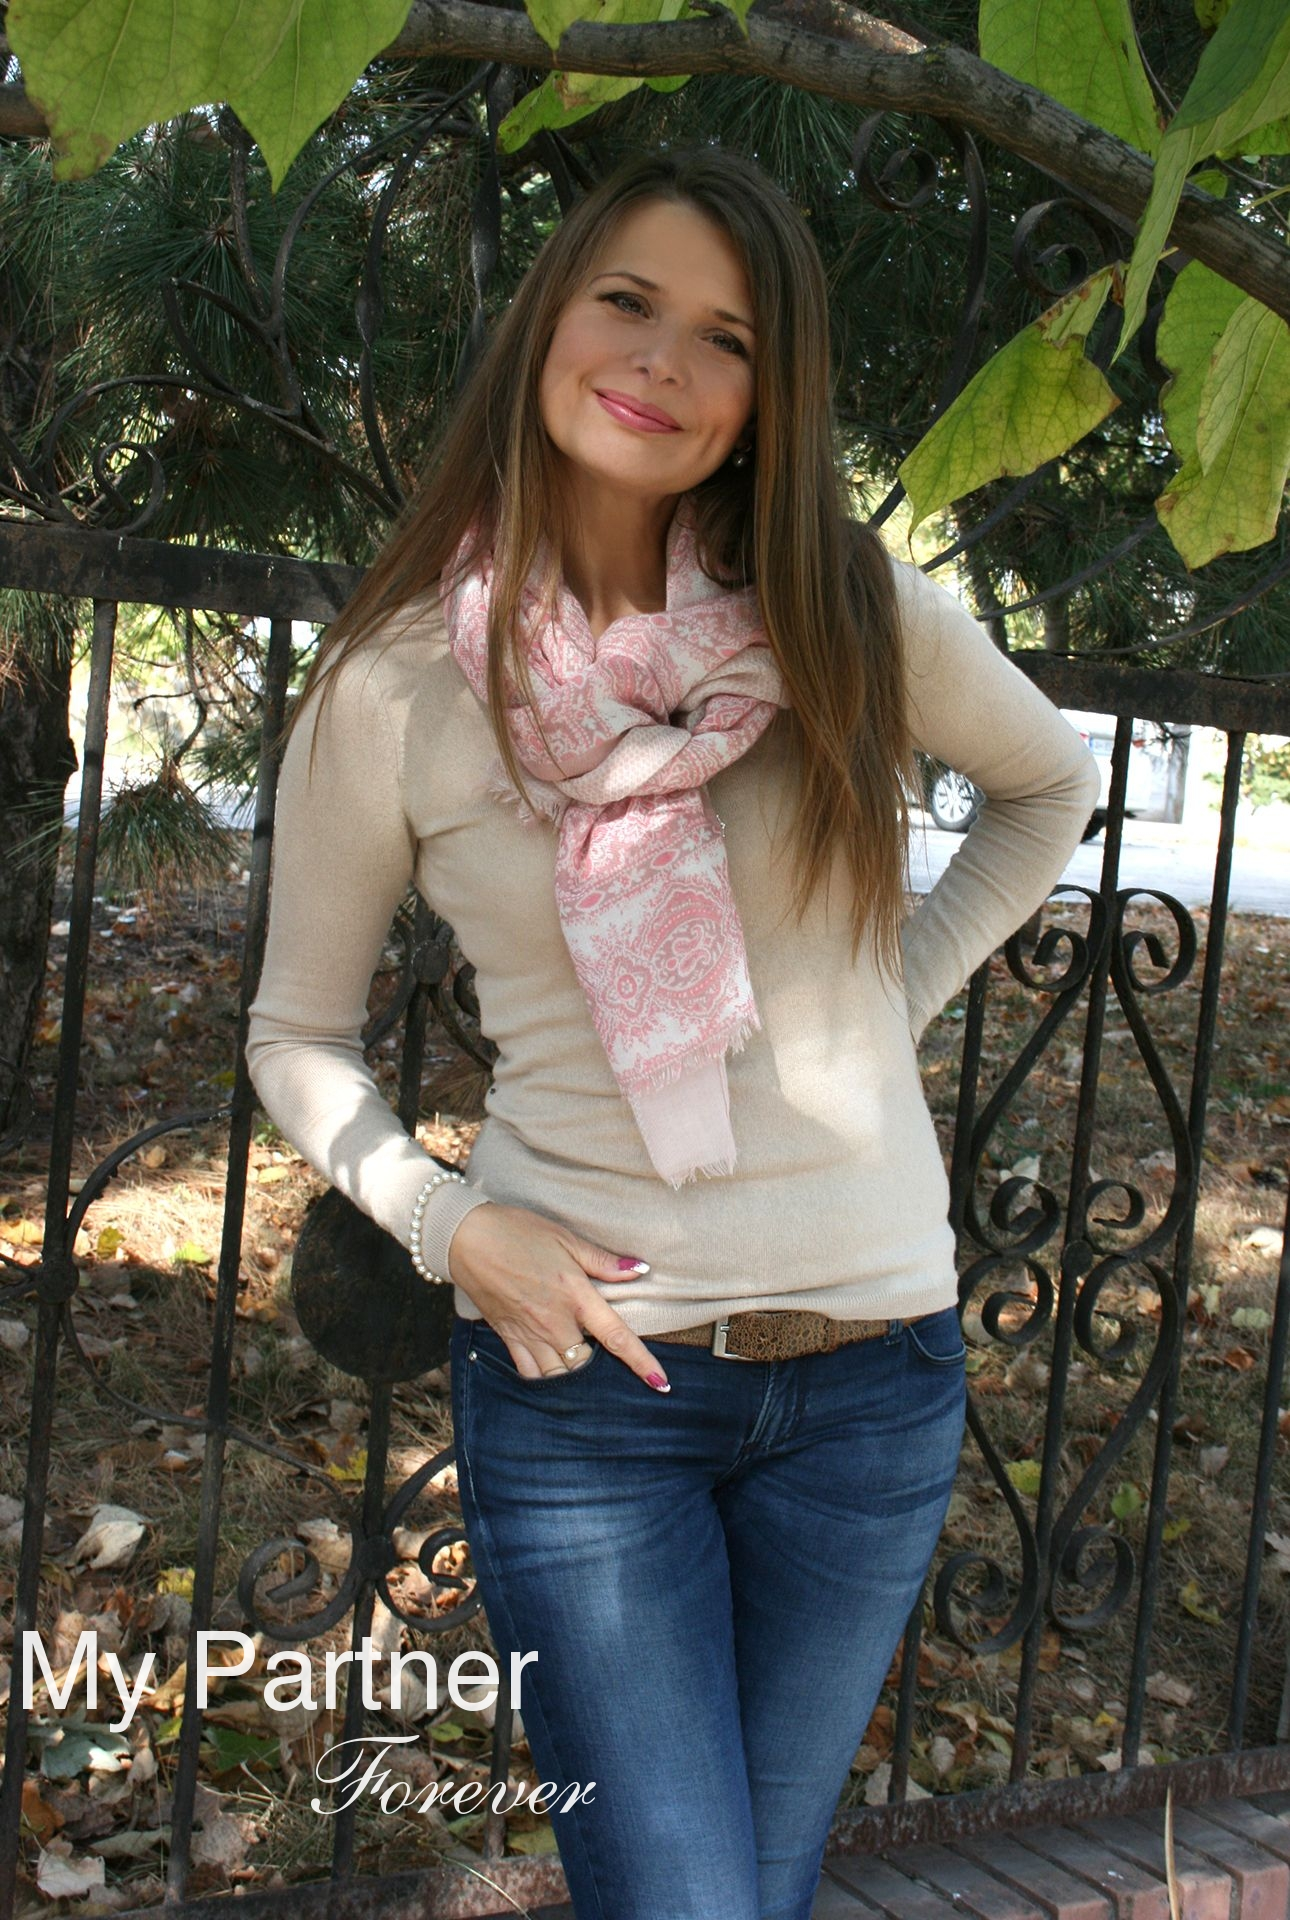 Datingsite to Meet Gorgeous Ukrainian Woman Lilya from Mariupol, Ukraine